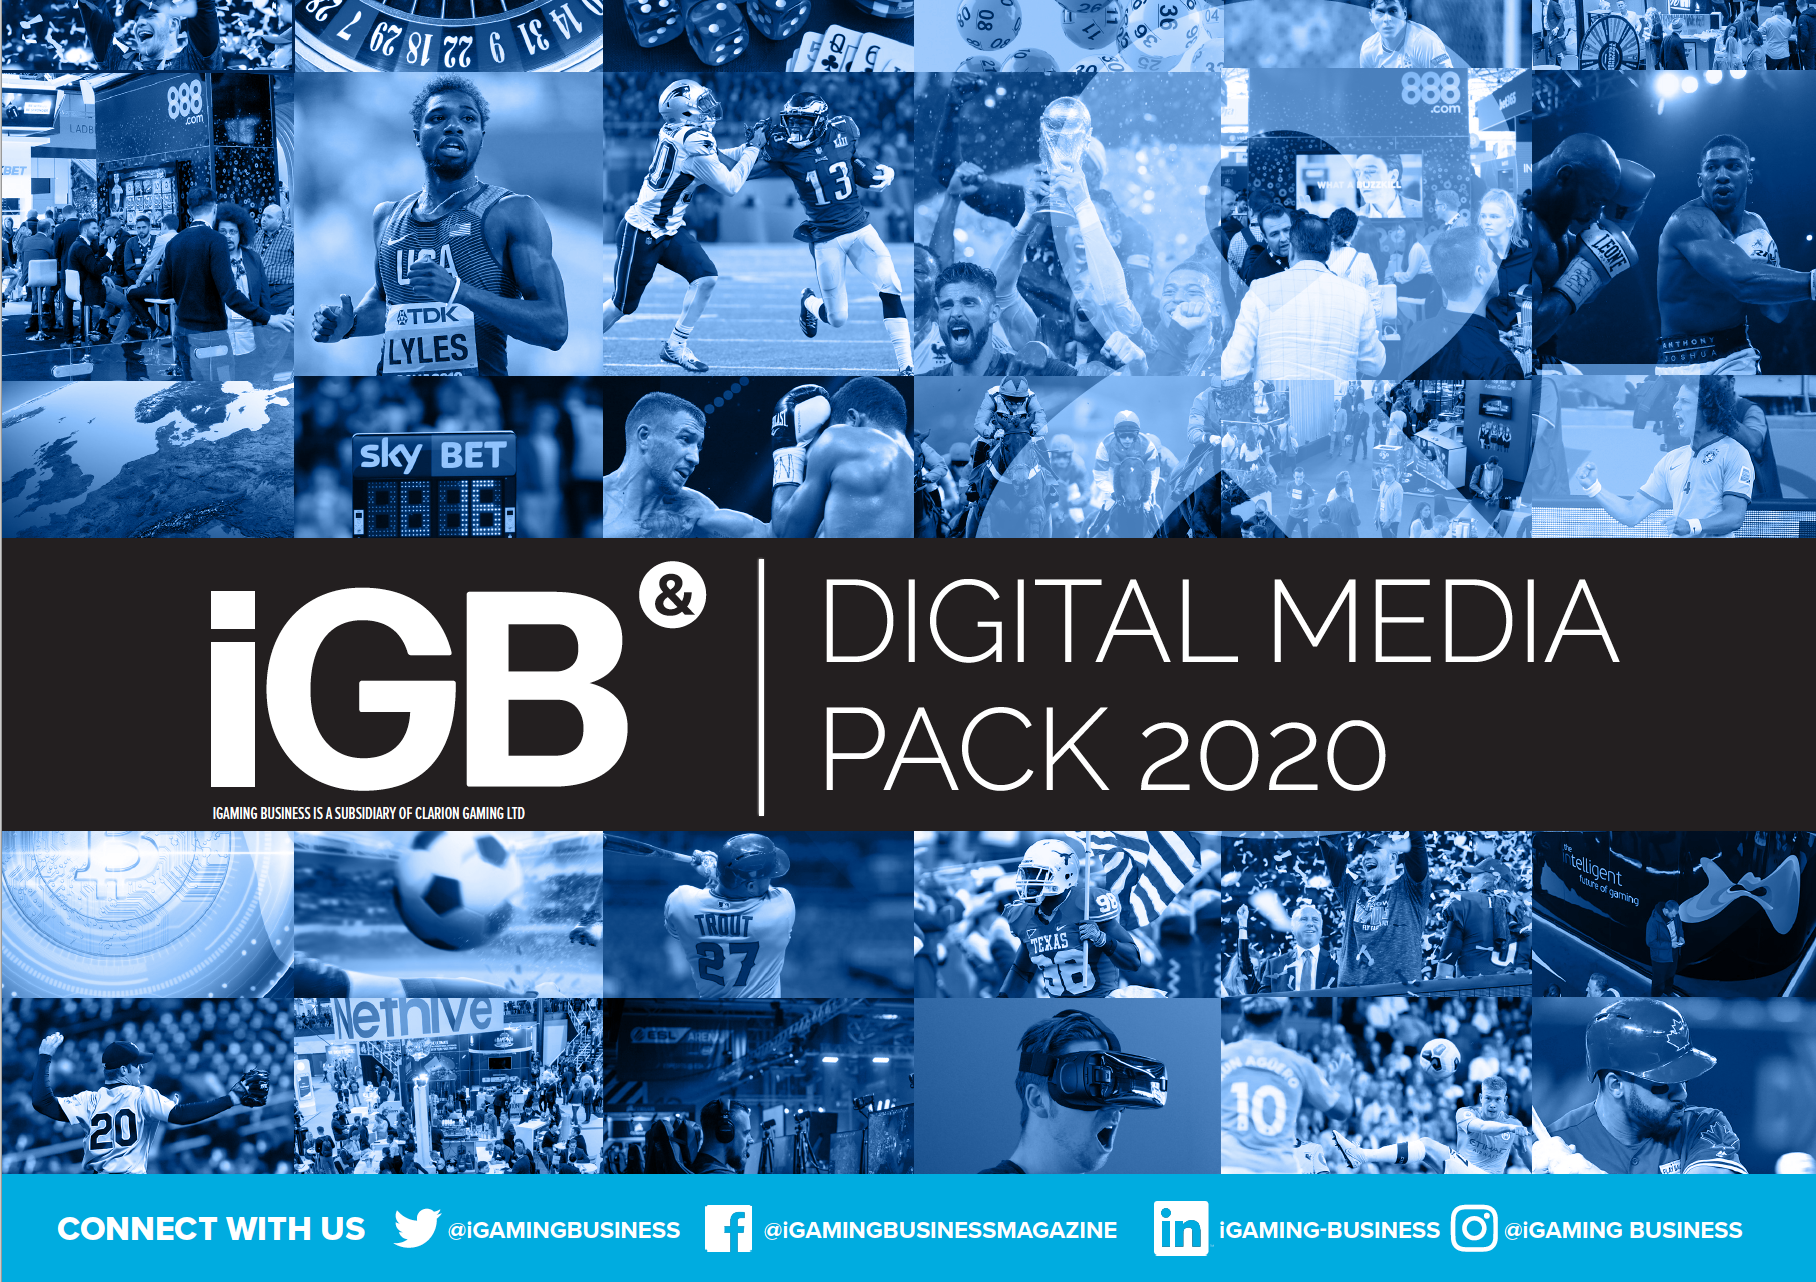 iGB Digital Media Pack 2020